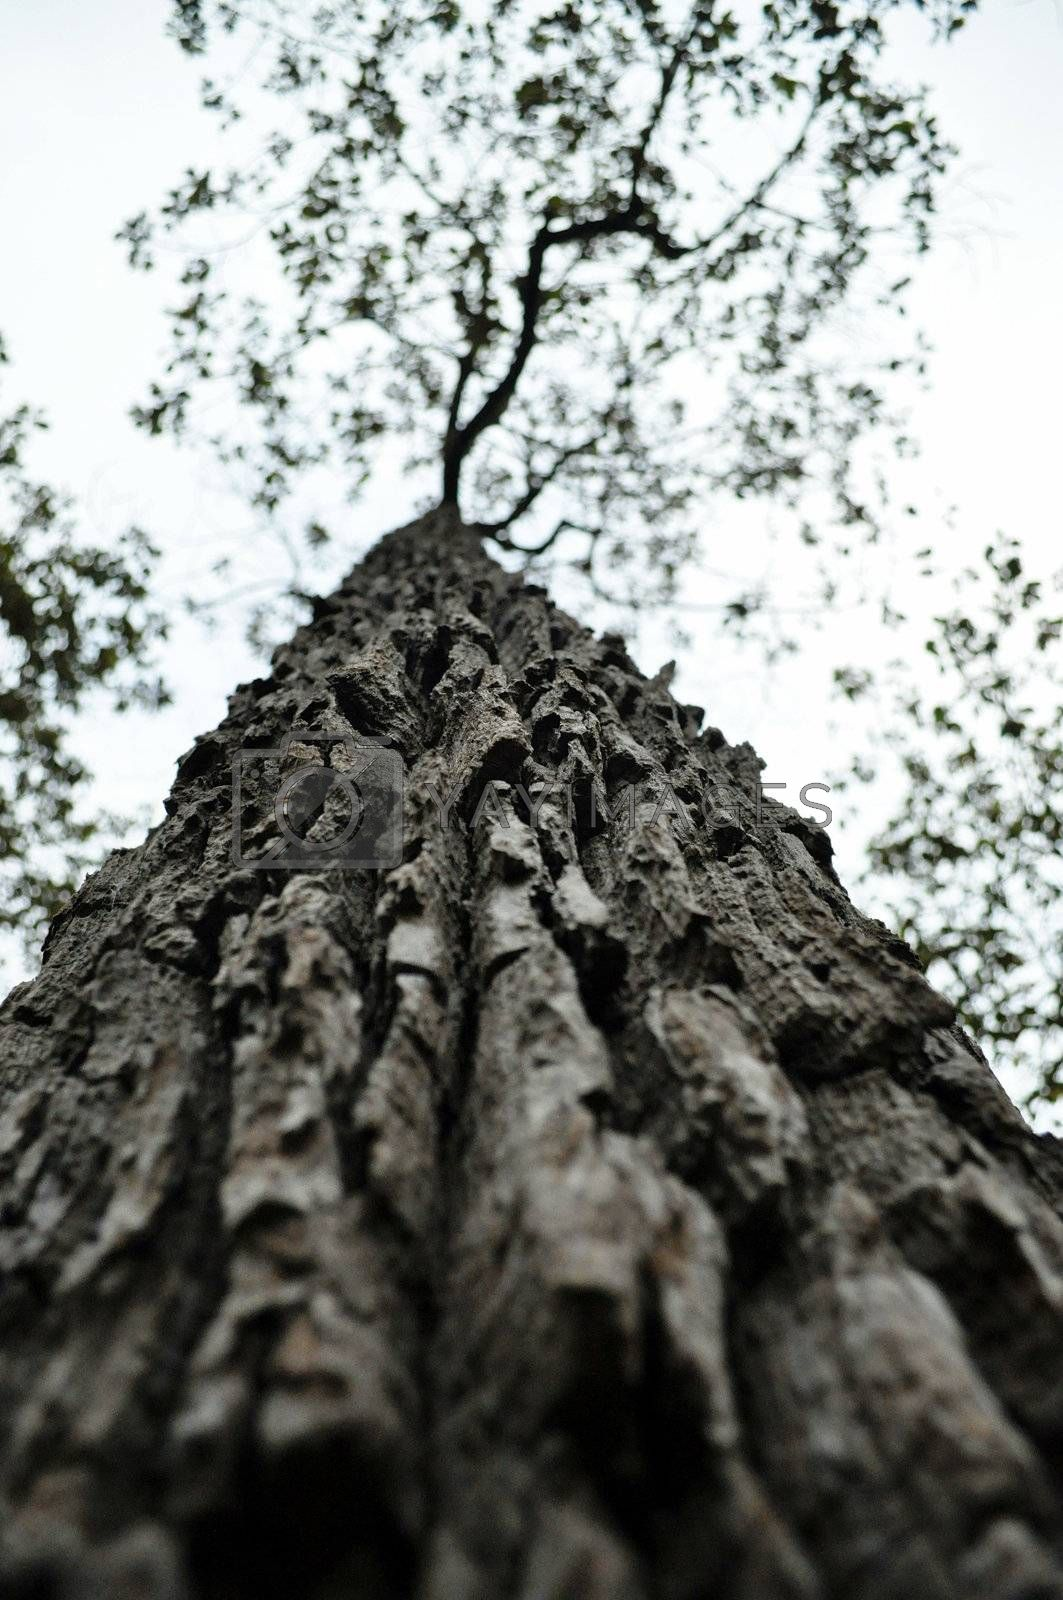 Bark is the outermost layers of stems and roots of woody plants.